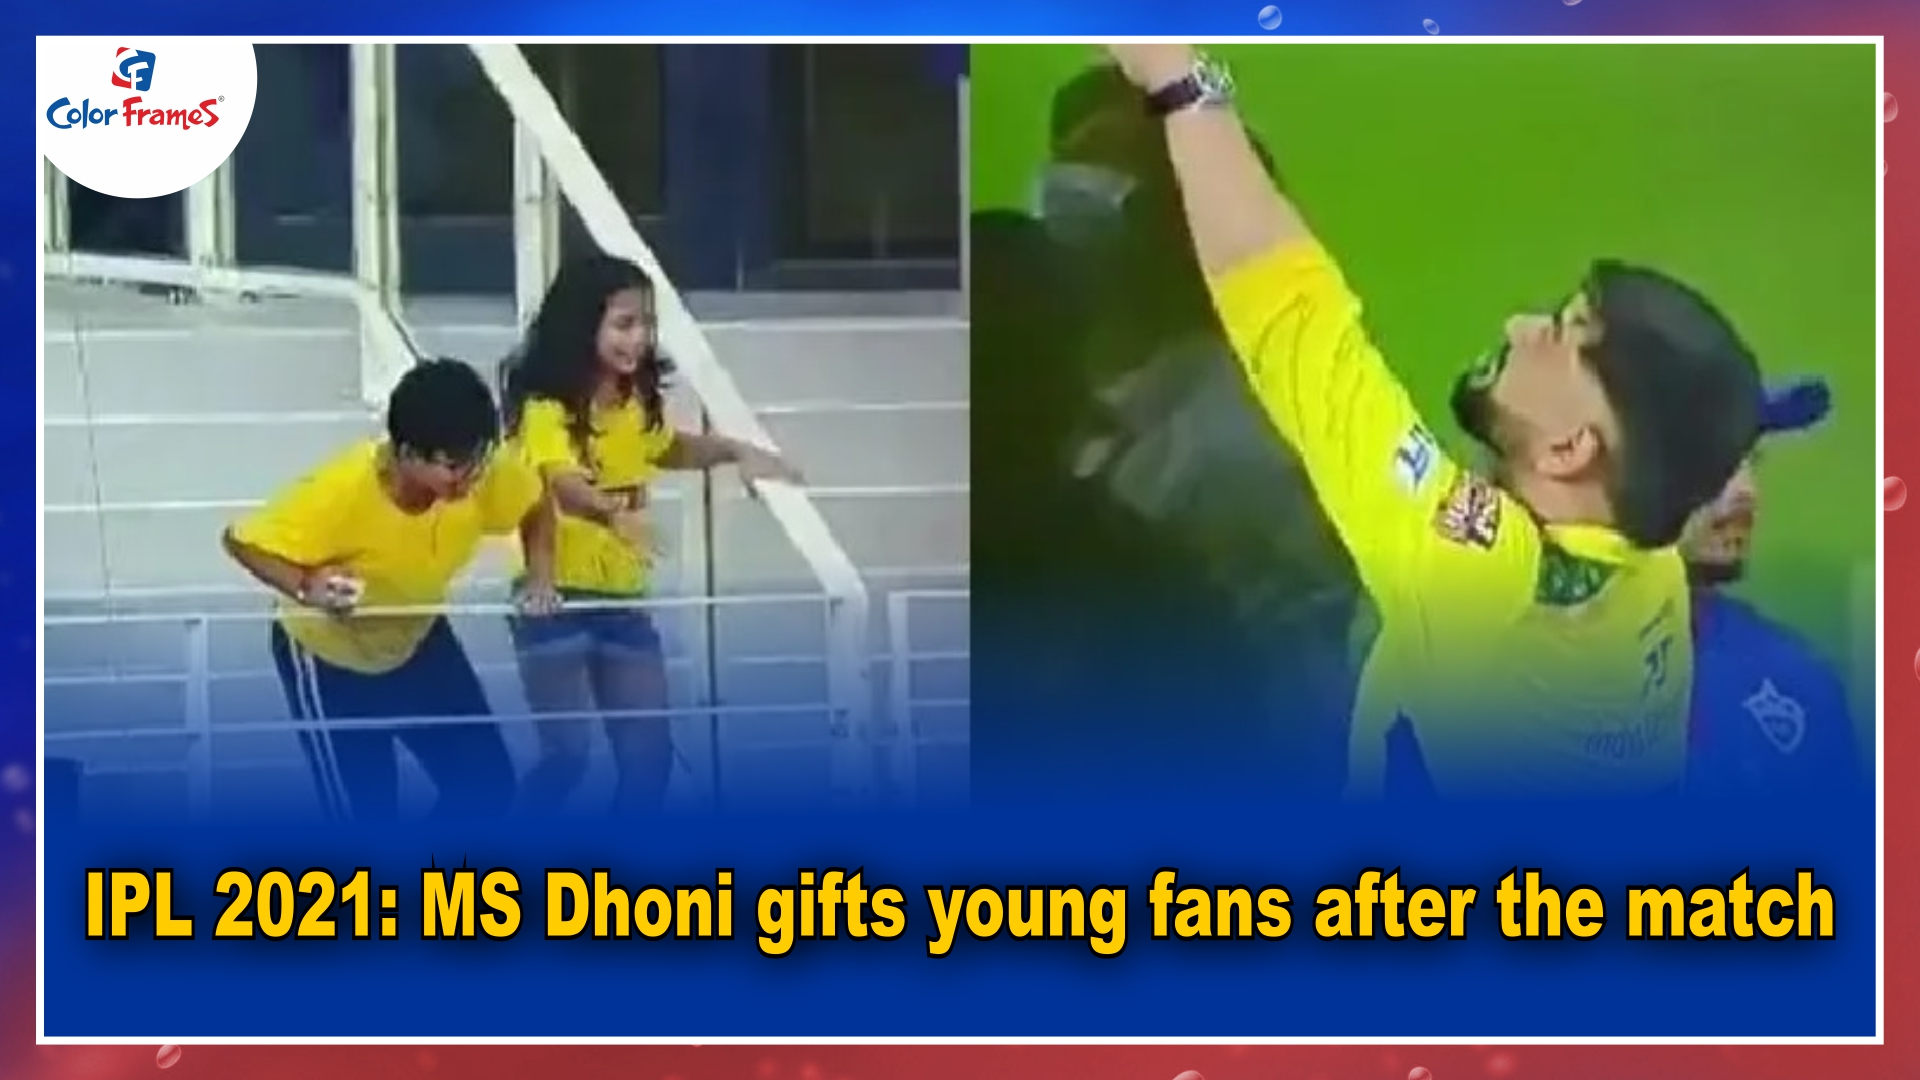 IPL 2021: MS Dhoni gifts young fans after the match